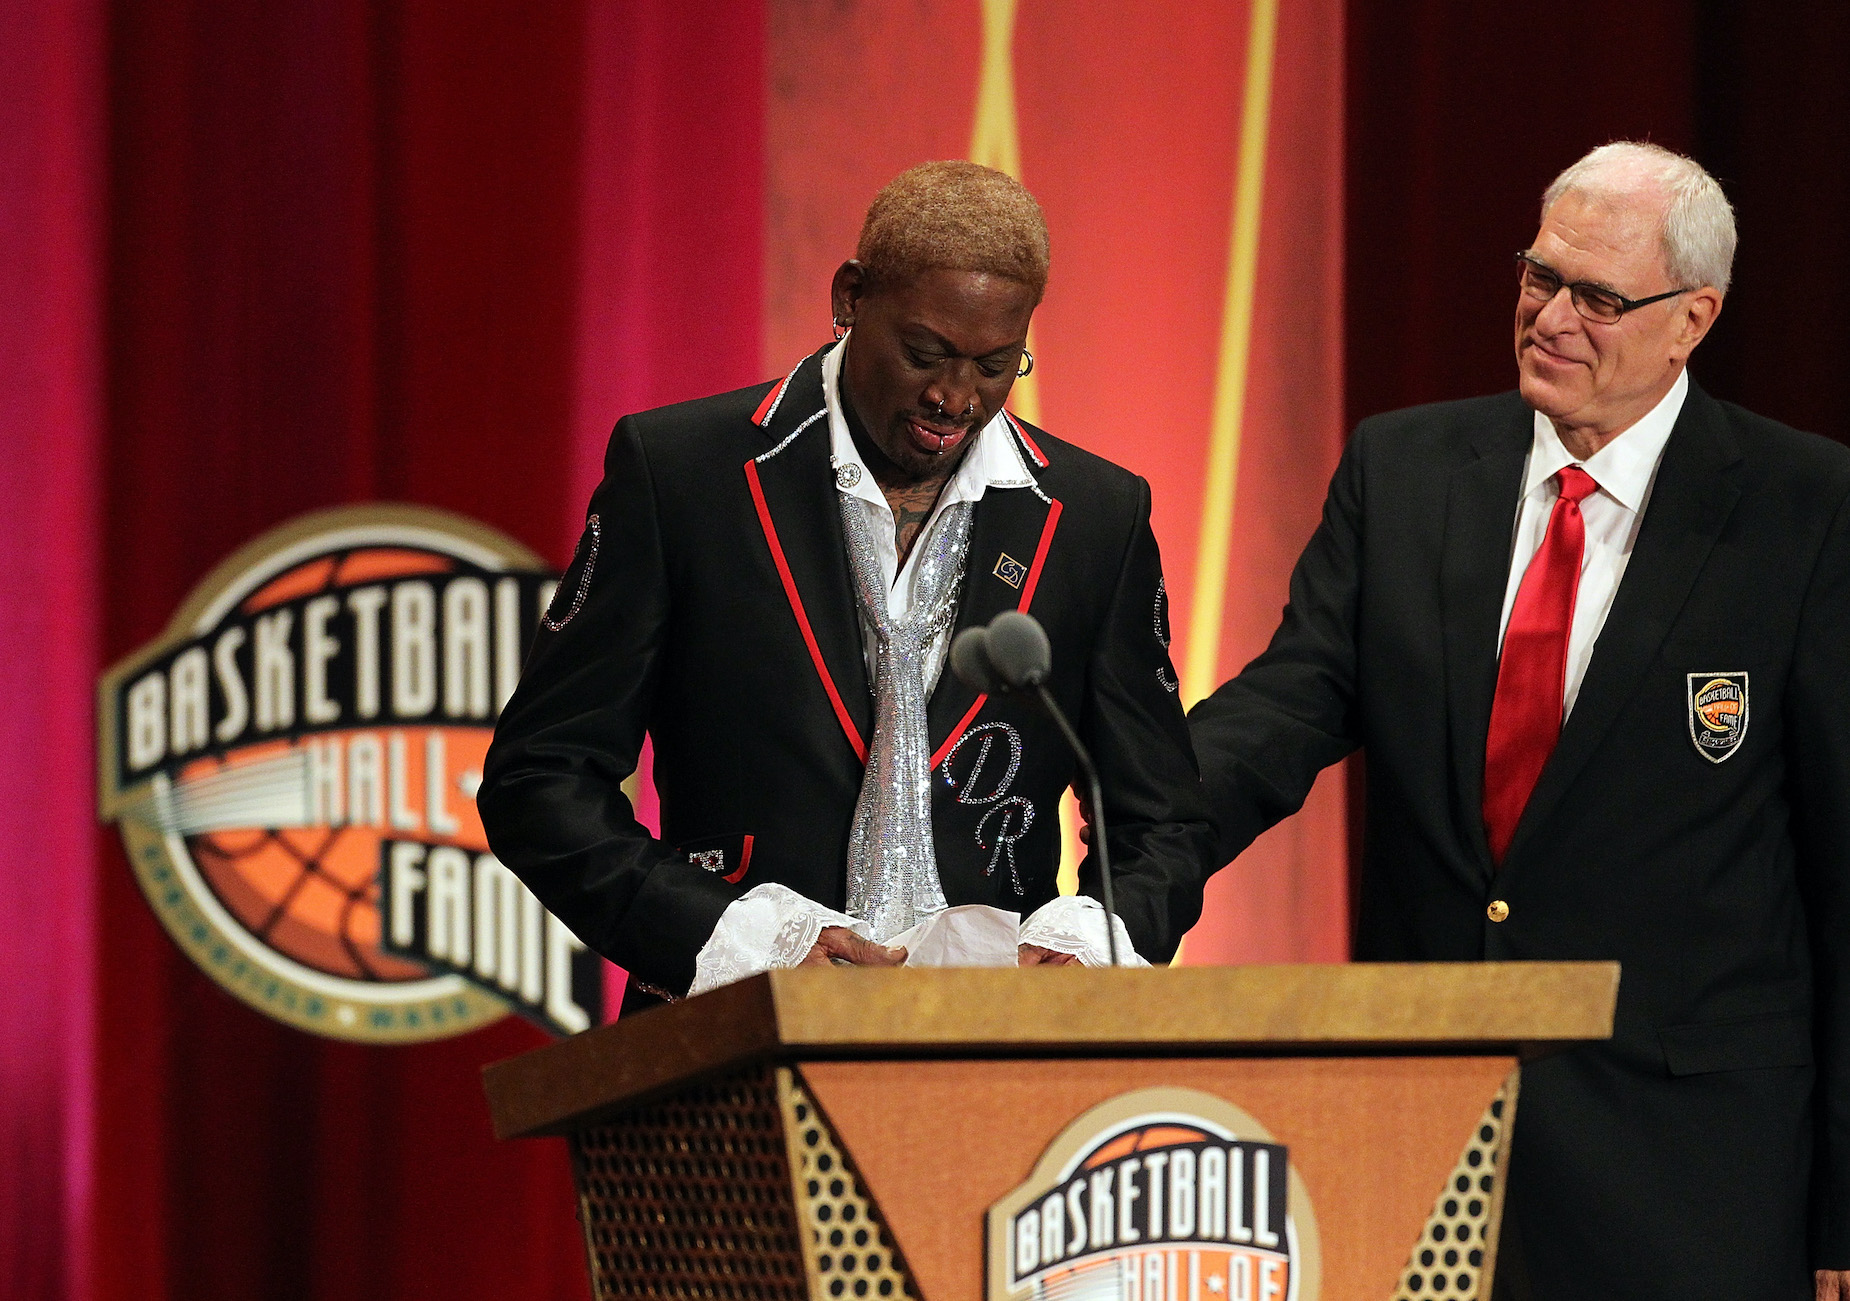 Phil Jackson (R) joins Dennis Rodman on stage during the latter's induction into the Basketball Hall of Fame.